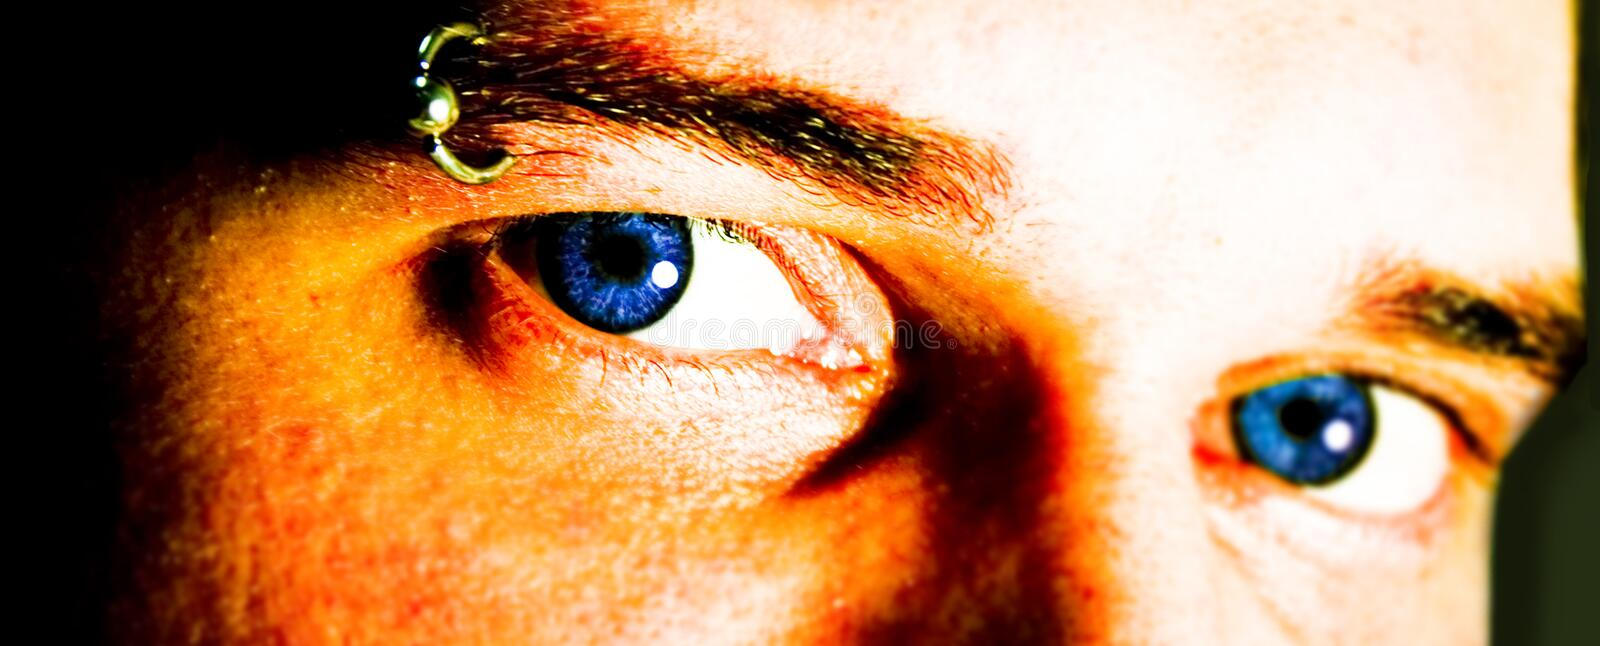 Blue eyes stock images